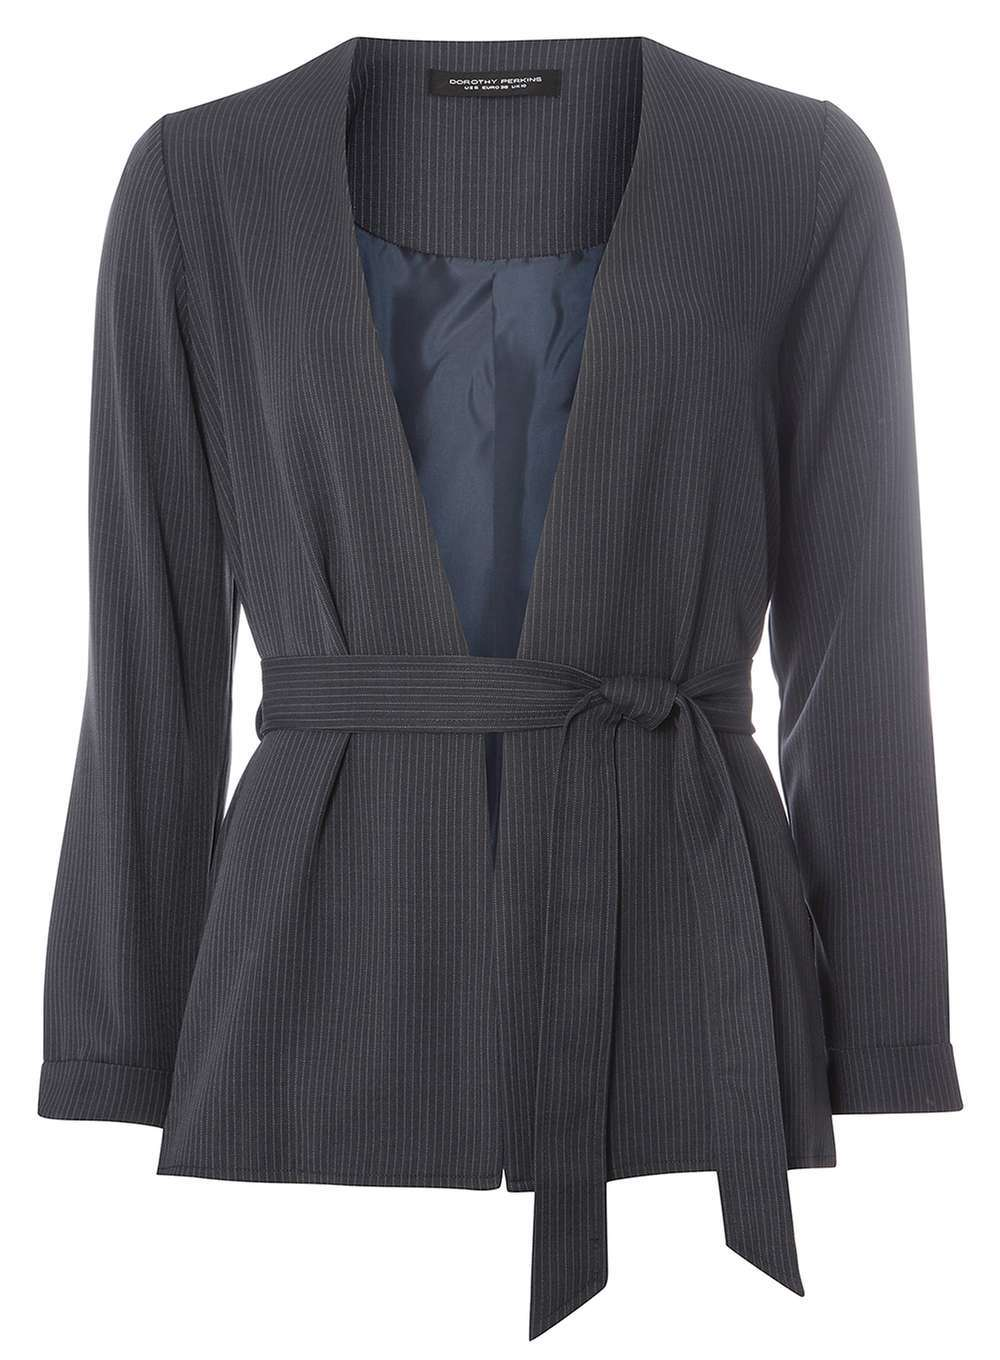 Womens Navy Pinstripe Jacket Navy - pattern: plain; style: belted jacket; collar: standard lapel/rever collar; predominant colour: navy; occasions: work; length: standard; fit: tailored/fitted; fibres: polyester/polyamide - 100%; waist detail: belted waist/tie at waist/drawstring; sleeve length: long sleeve; sleeve style: standard; collar break: medium; pattern type: fabric; texture group: woven light midweight; wardrobe: investment; season: a/w 2016